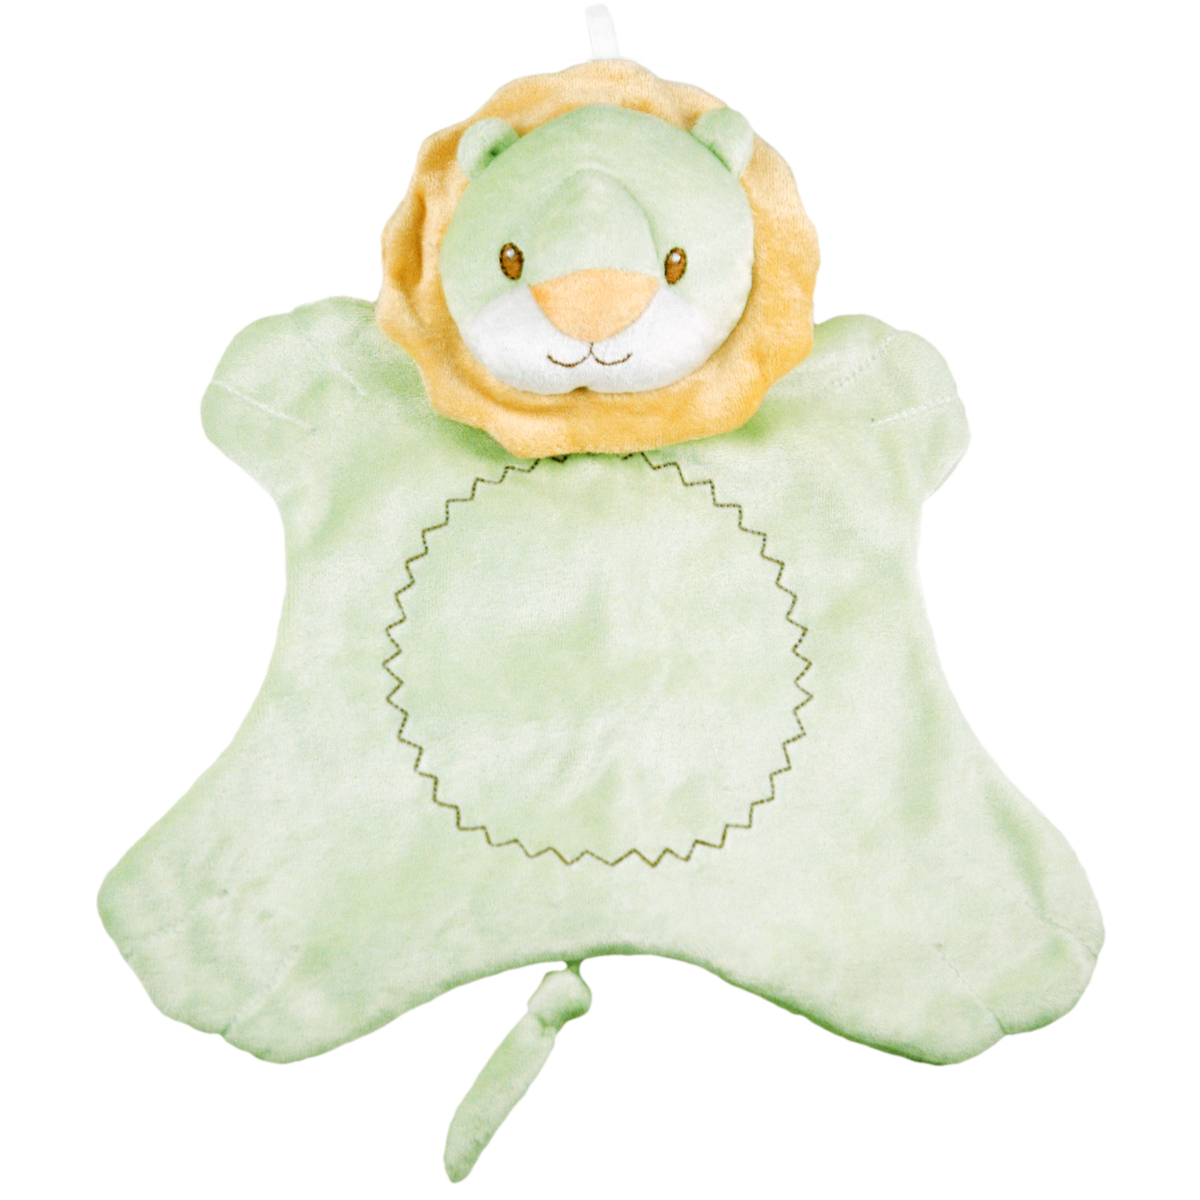 Enter to Win a Bamboo Zoo Cuddlie from Dandelion!!